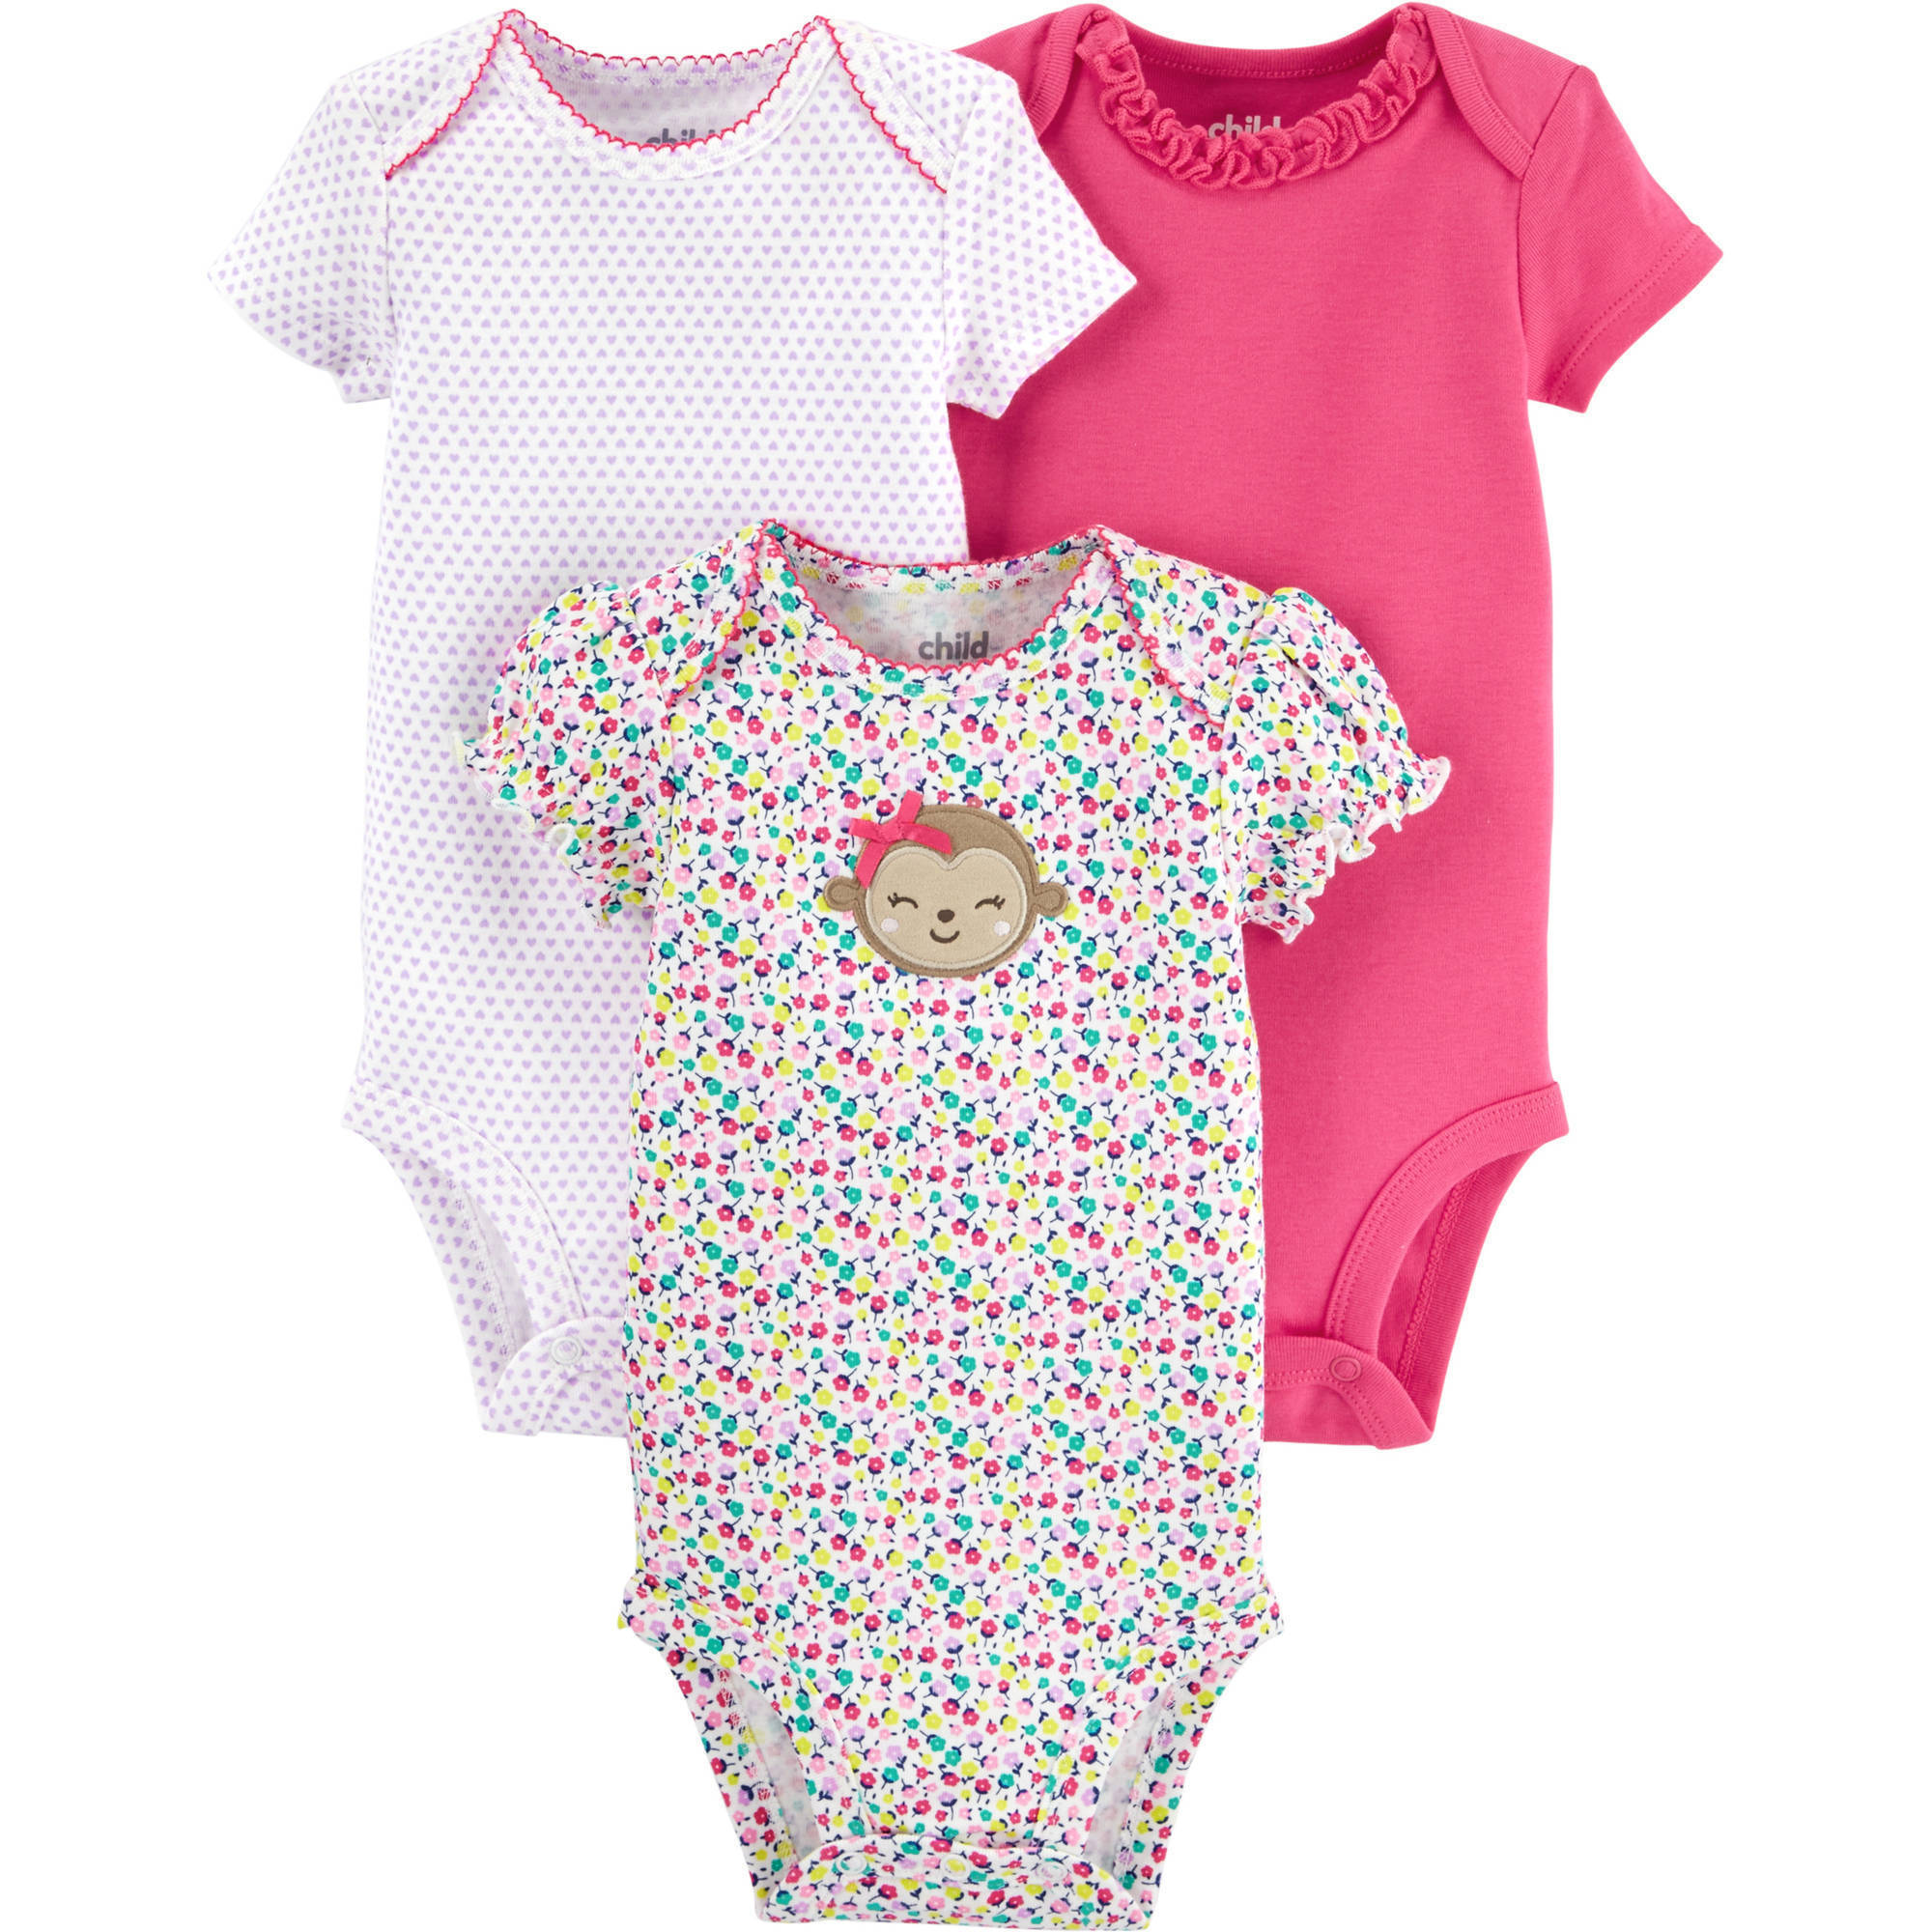 Child Mine By Carter s Newborn Baby Girl Bodysuits 3